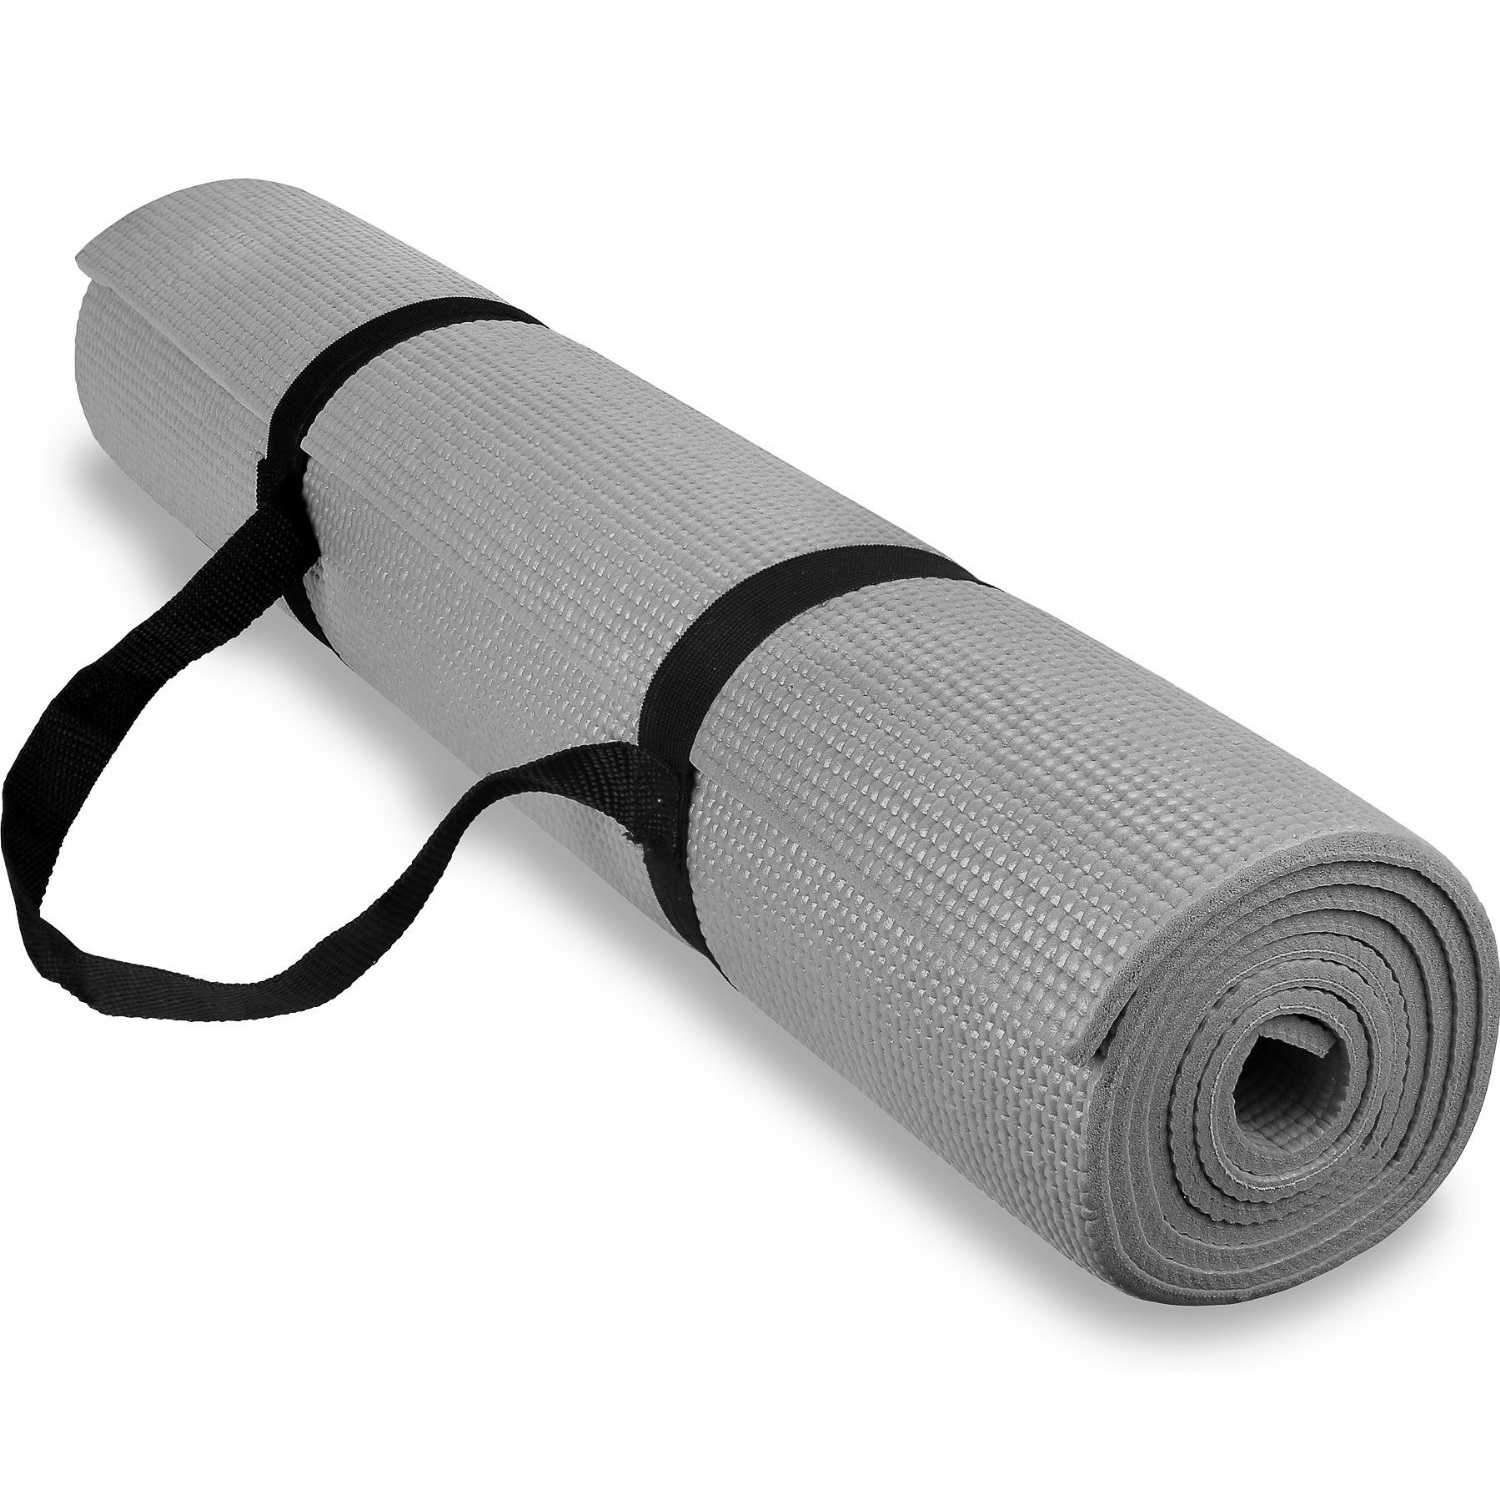 spoga anti-slip exercise yoga mat with carrying strap gray